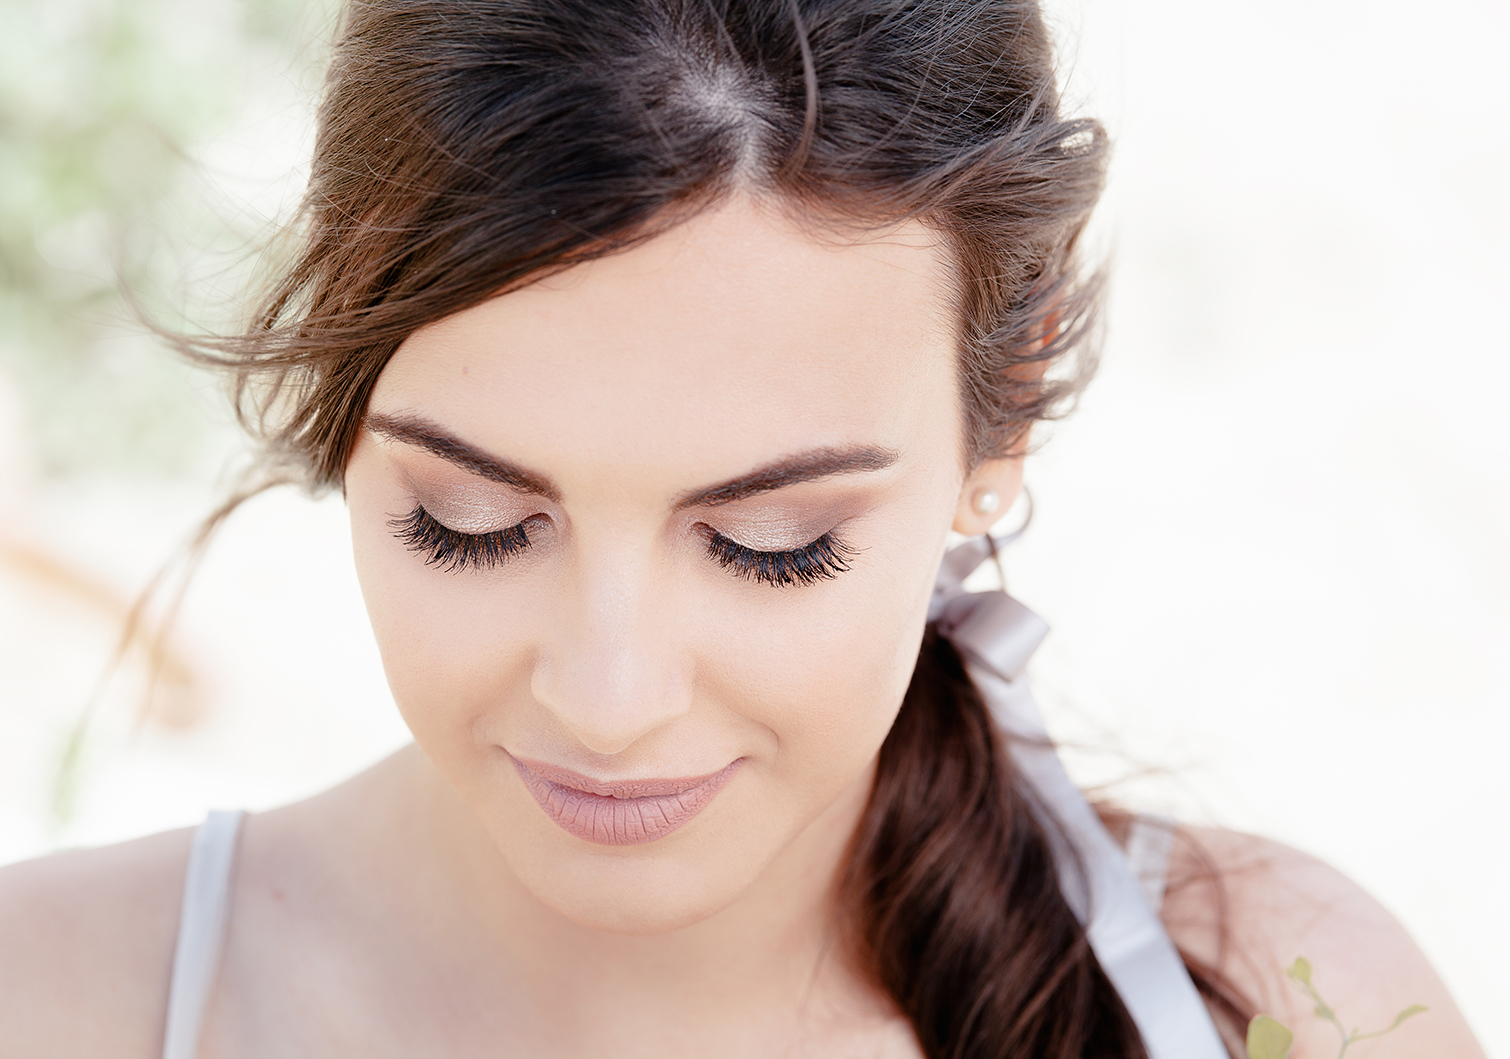 Sea, Sand, Simplicity and Serenity Makeup